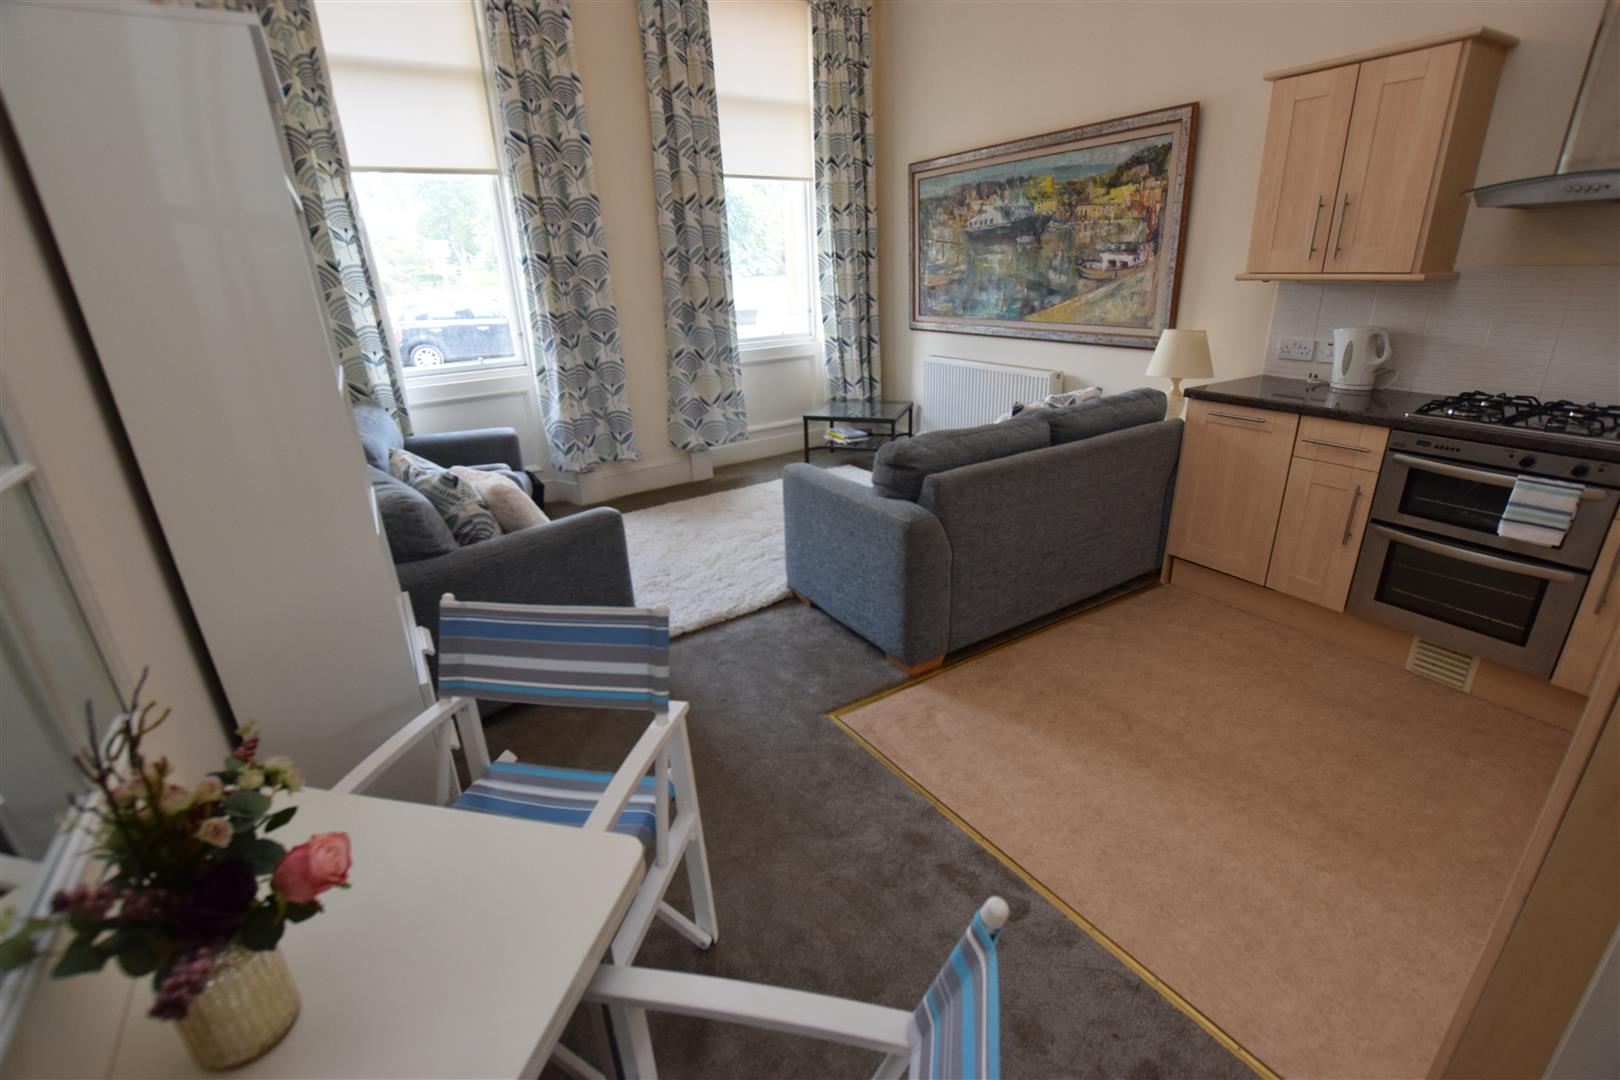 Flat 1, 36-38, Tay Street, Perth, Perthshire, PH1 5TR, UK